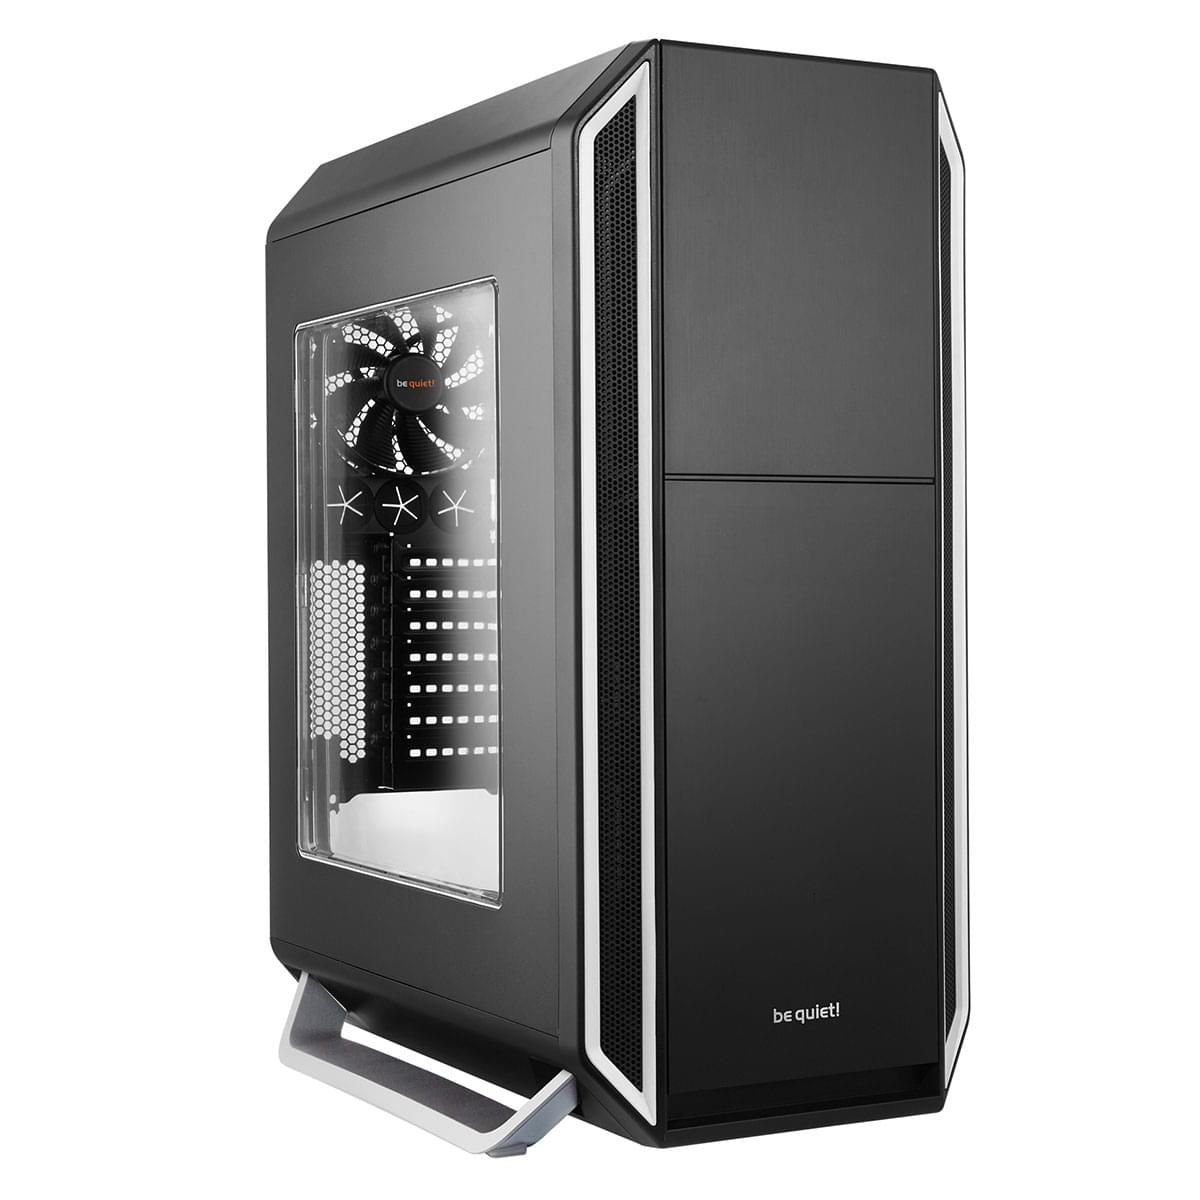 Be Quiet! Silent Base 800 Silver Window - Boîtier PC Aluminium - Sans Alim - 0